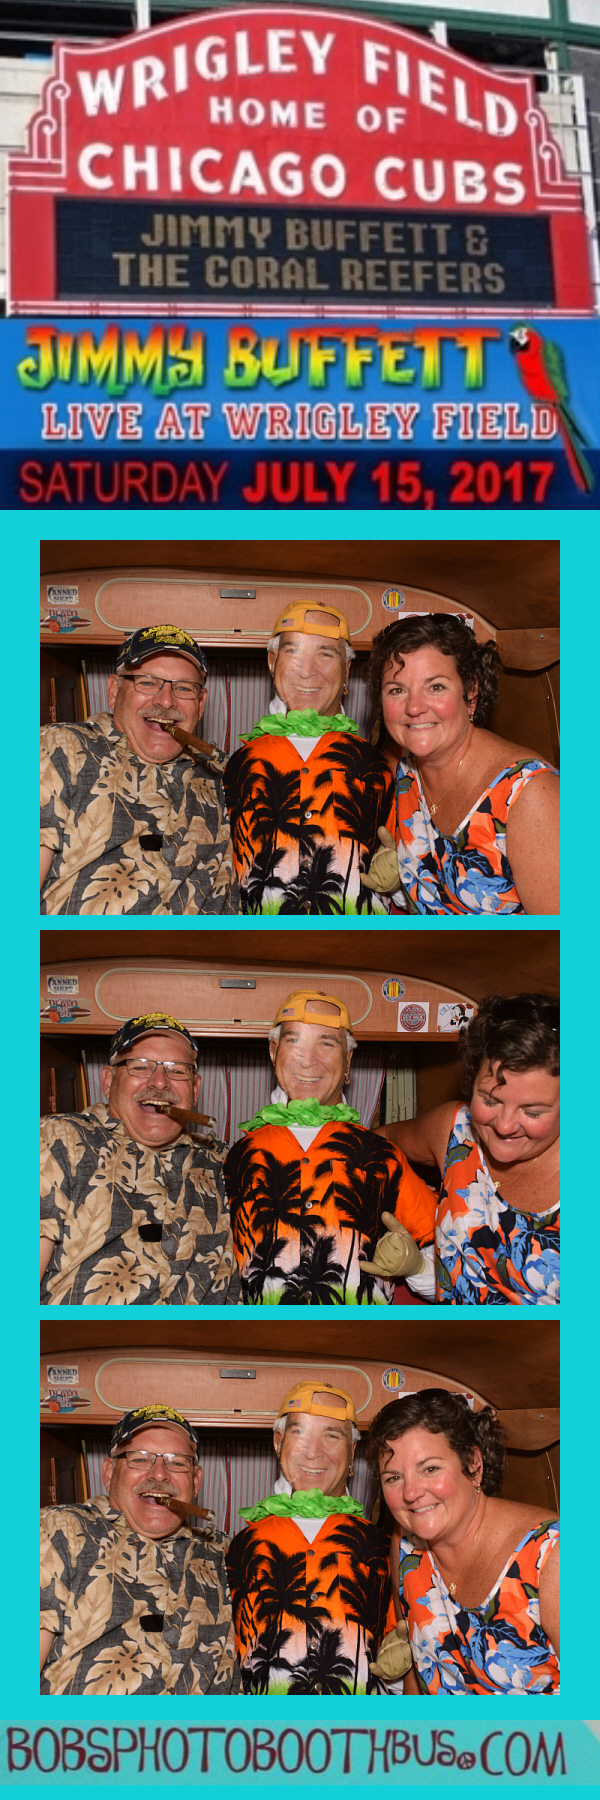 Jimmy Buffett final photo strip graphic_48.jpg